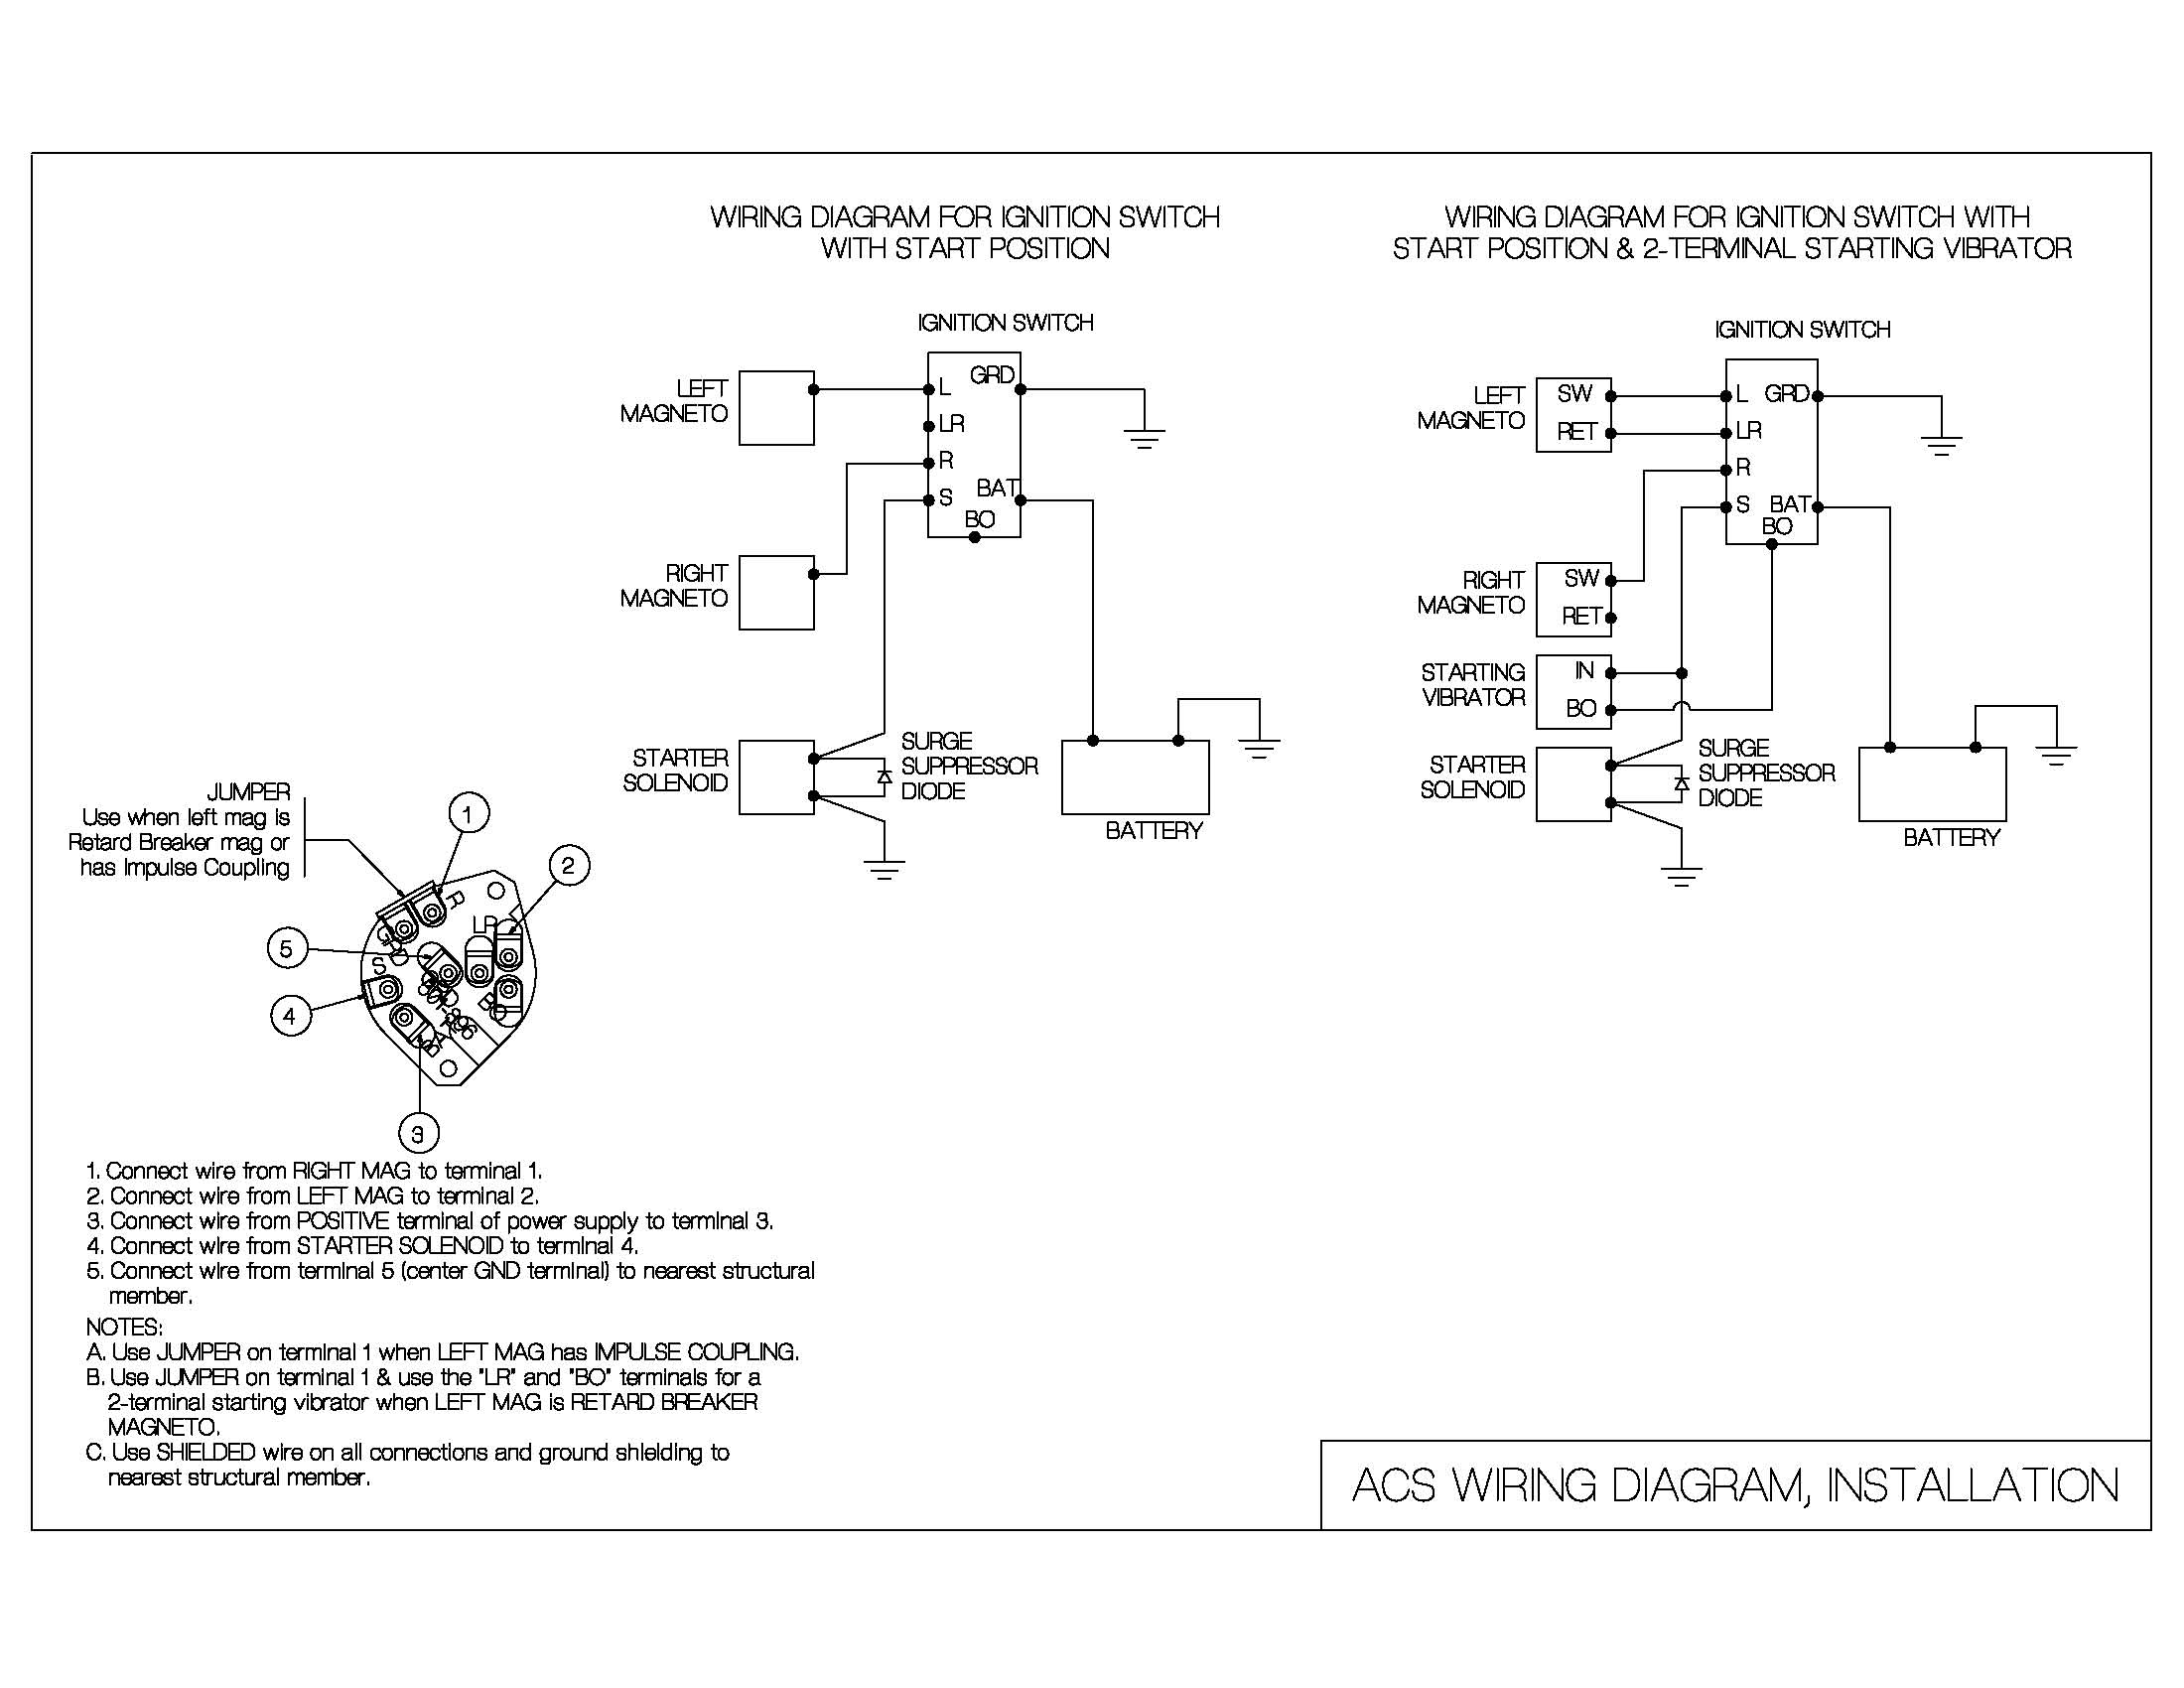 Wiring Diagram ignition switch wiring diagram acs products company terex hd1000 wiring diagram at panicattacktreatment.co